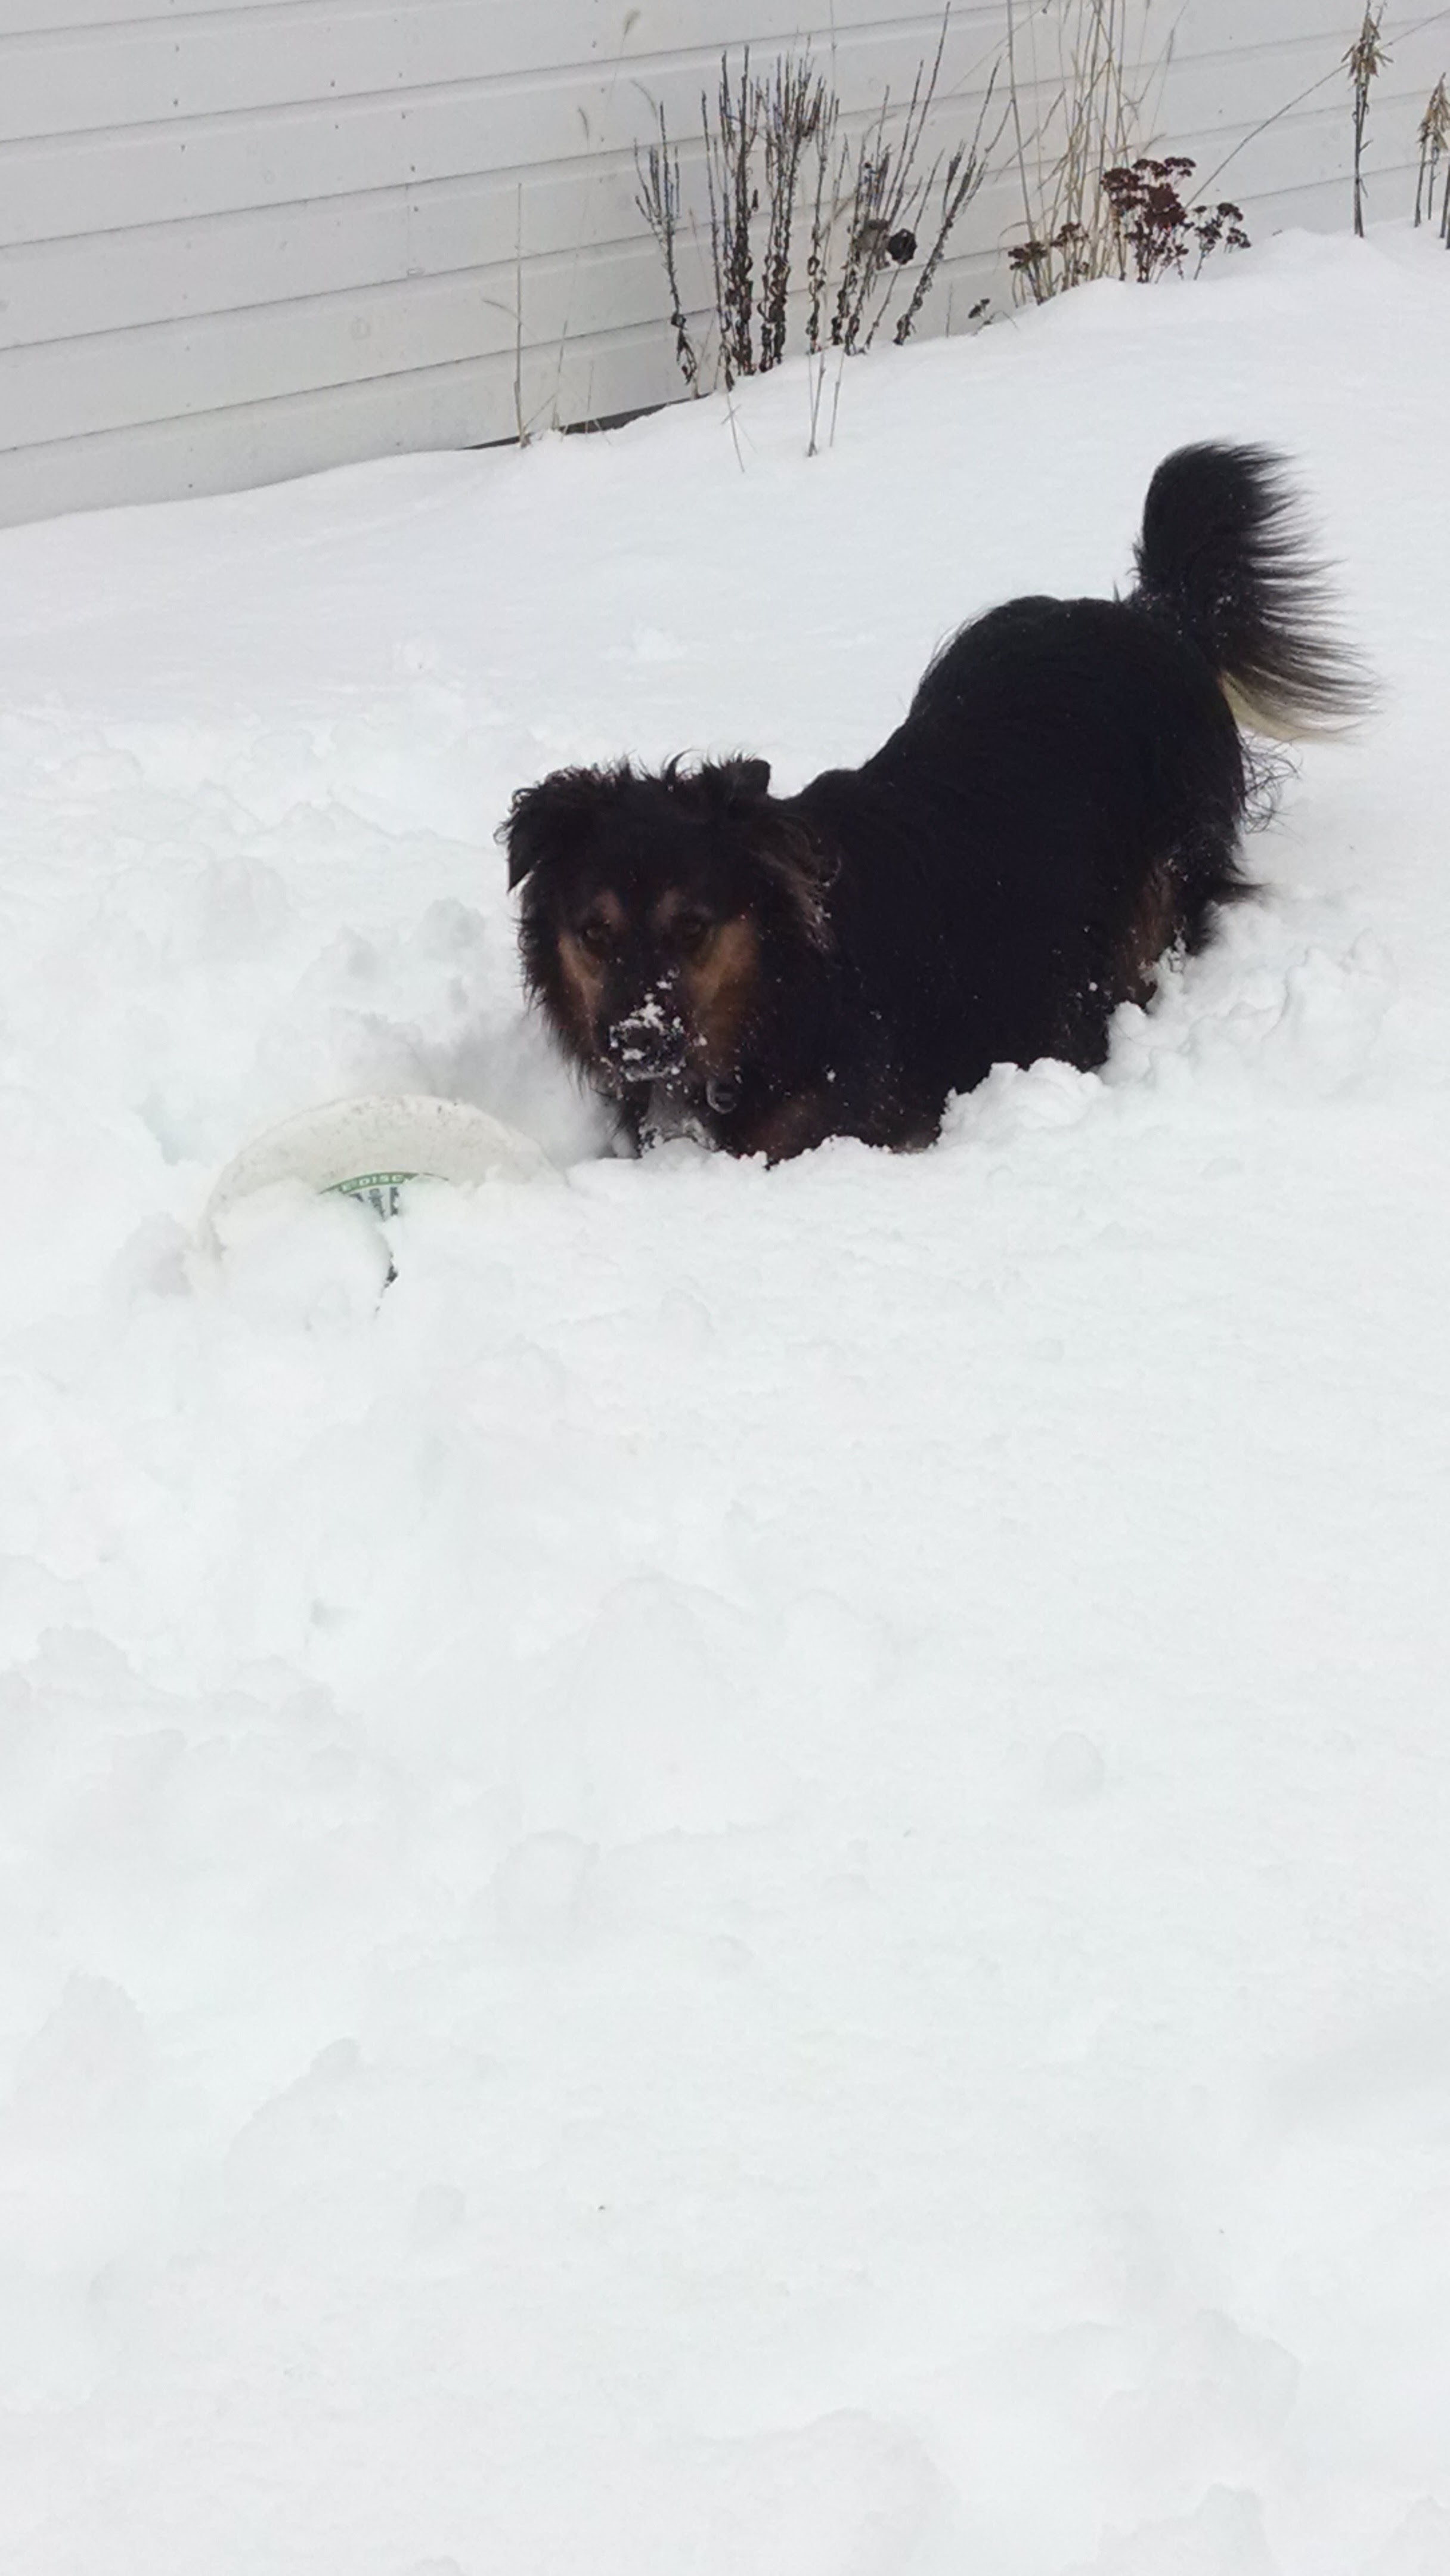 Tuckerman making the most of the snow.